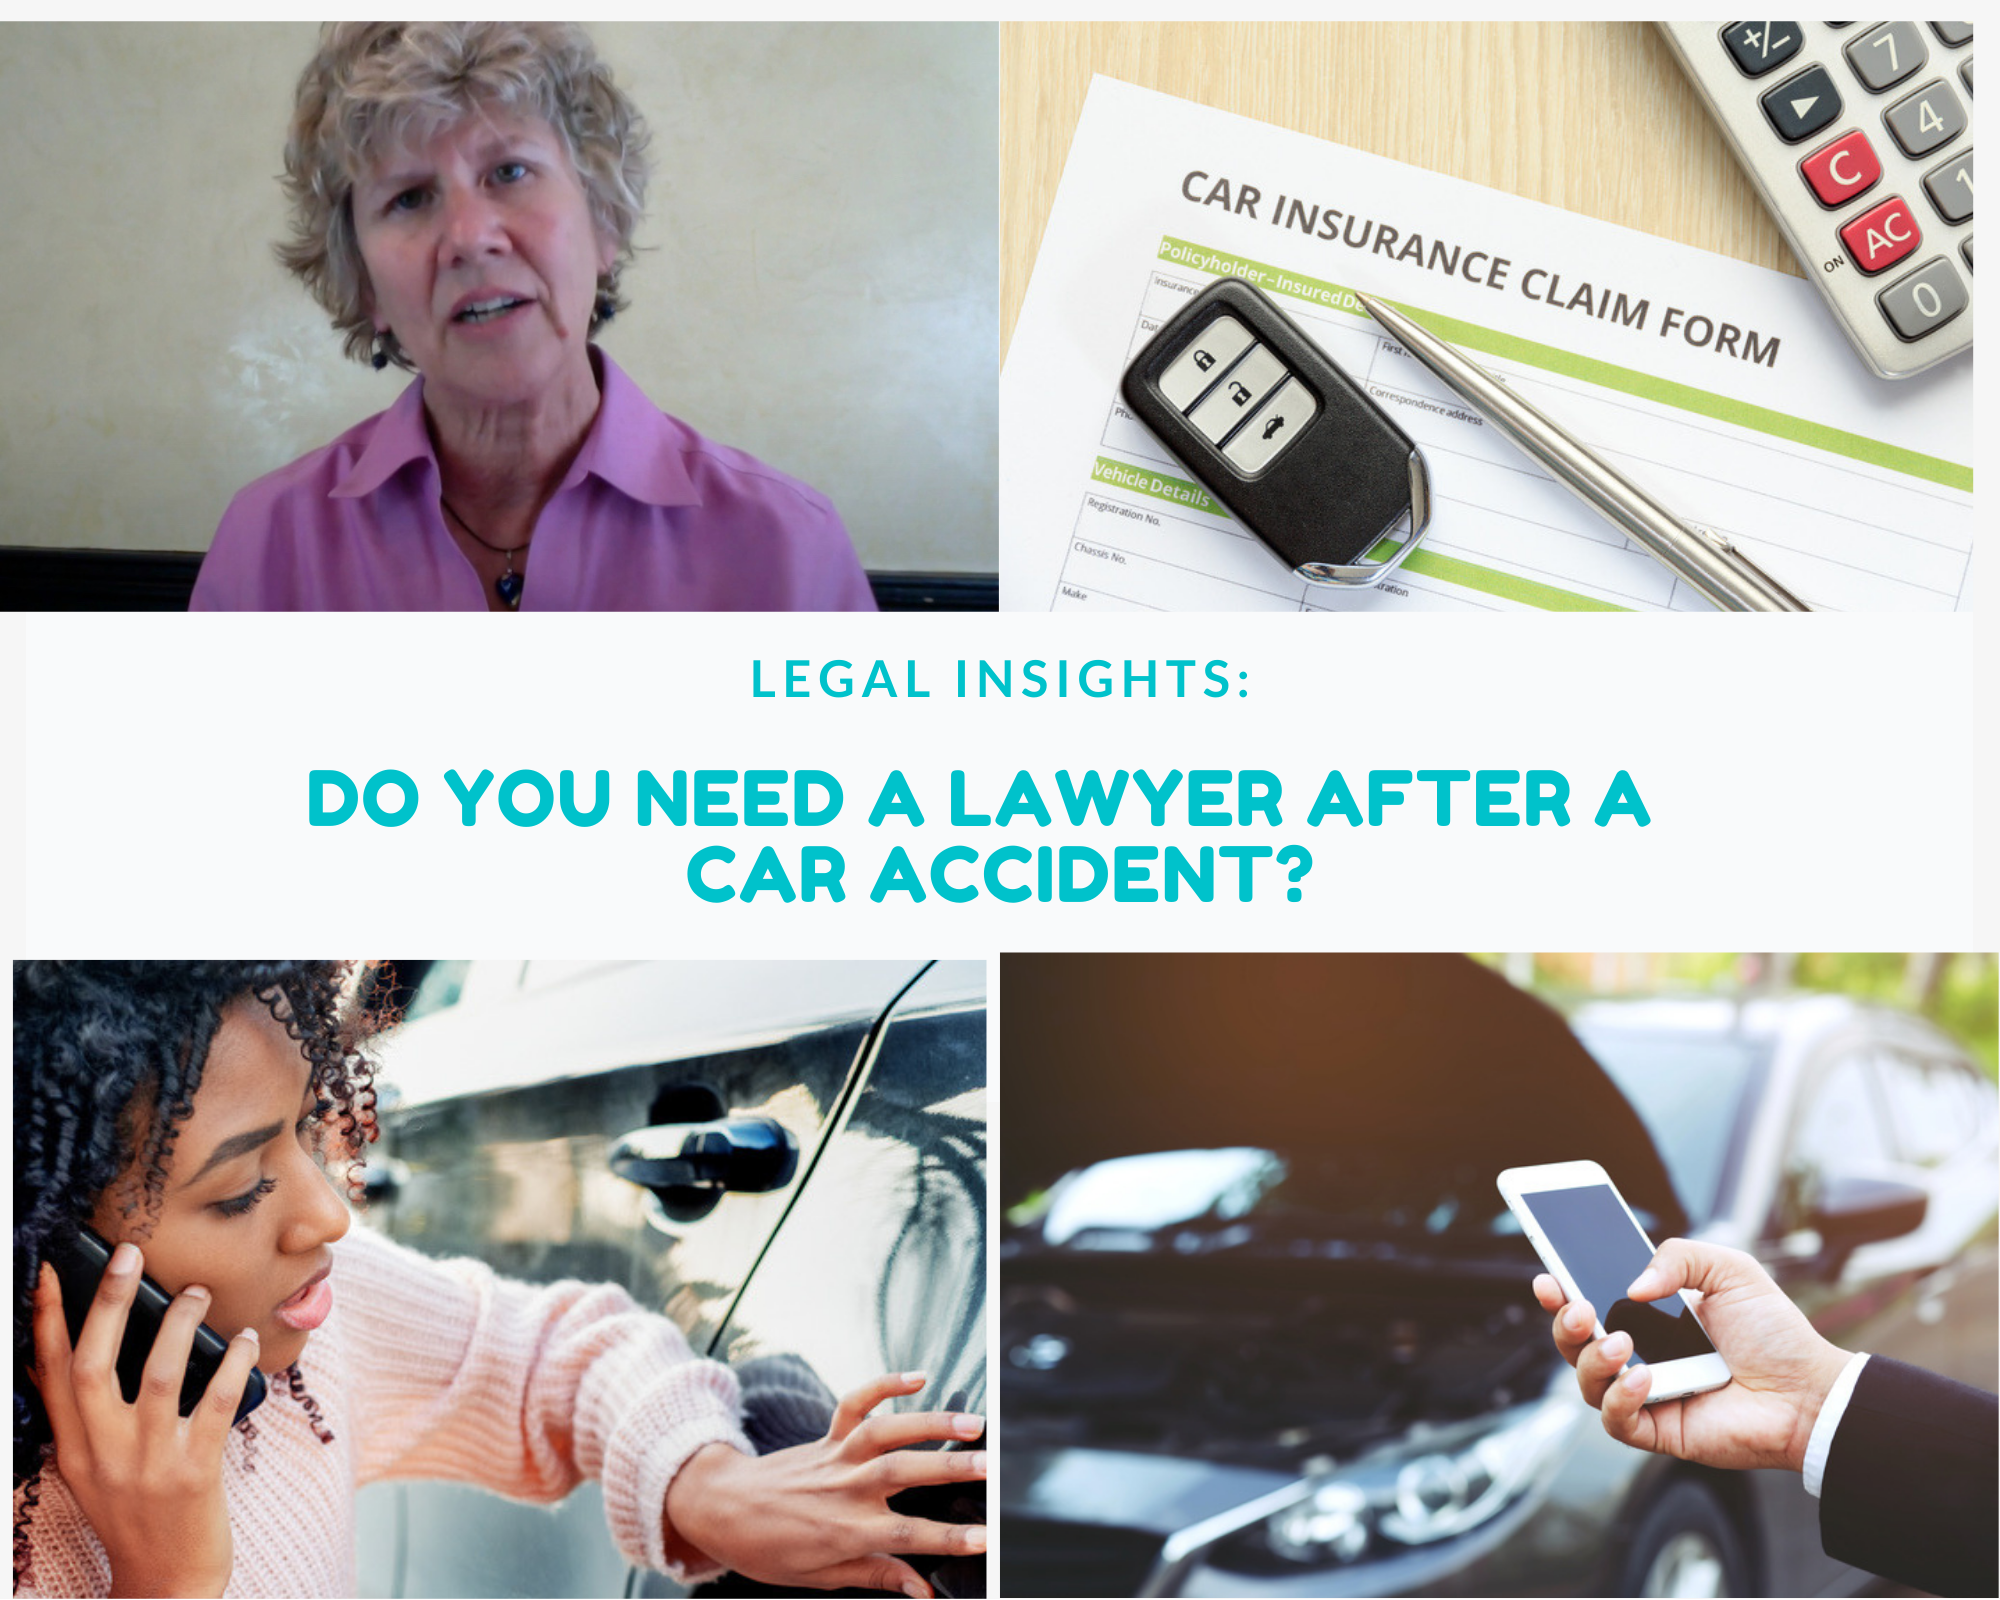 Do You Need a Lawyer after a Car Crash?